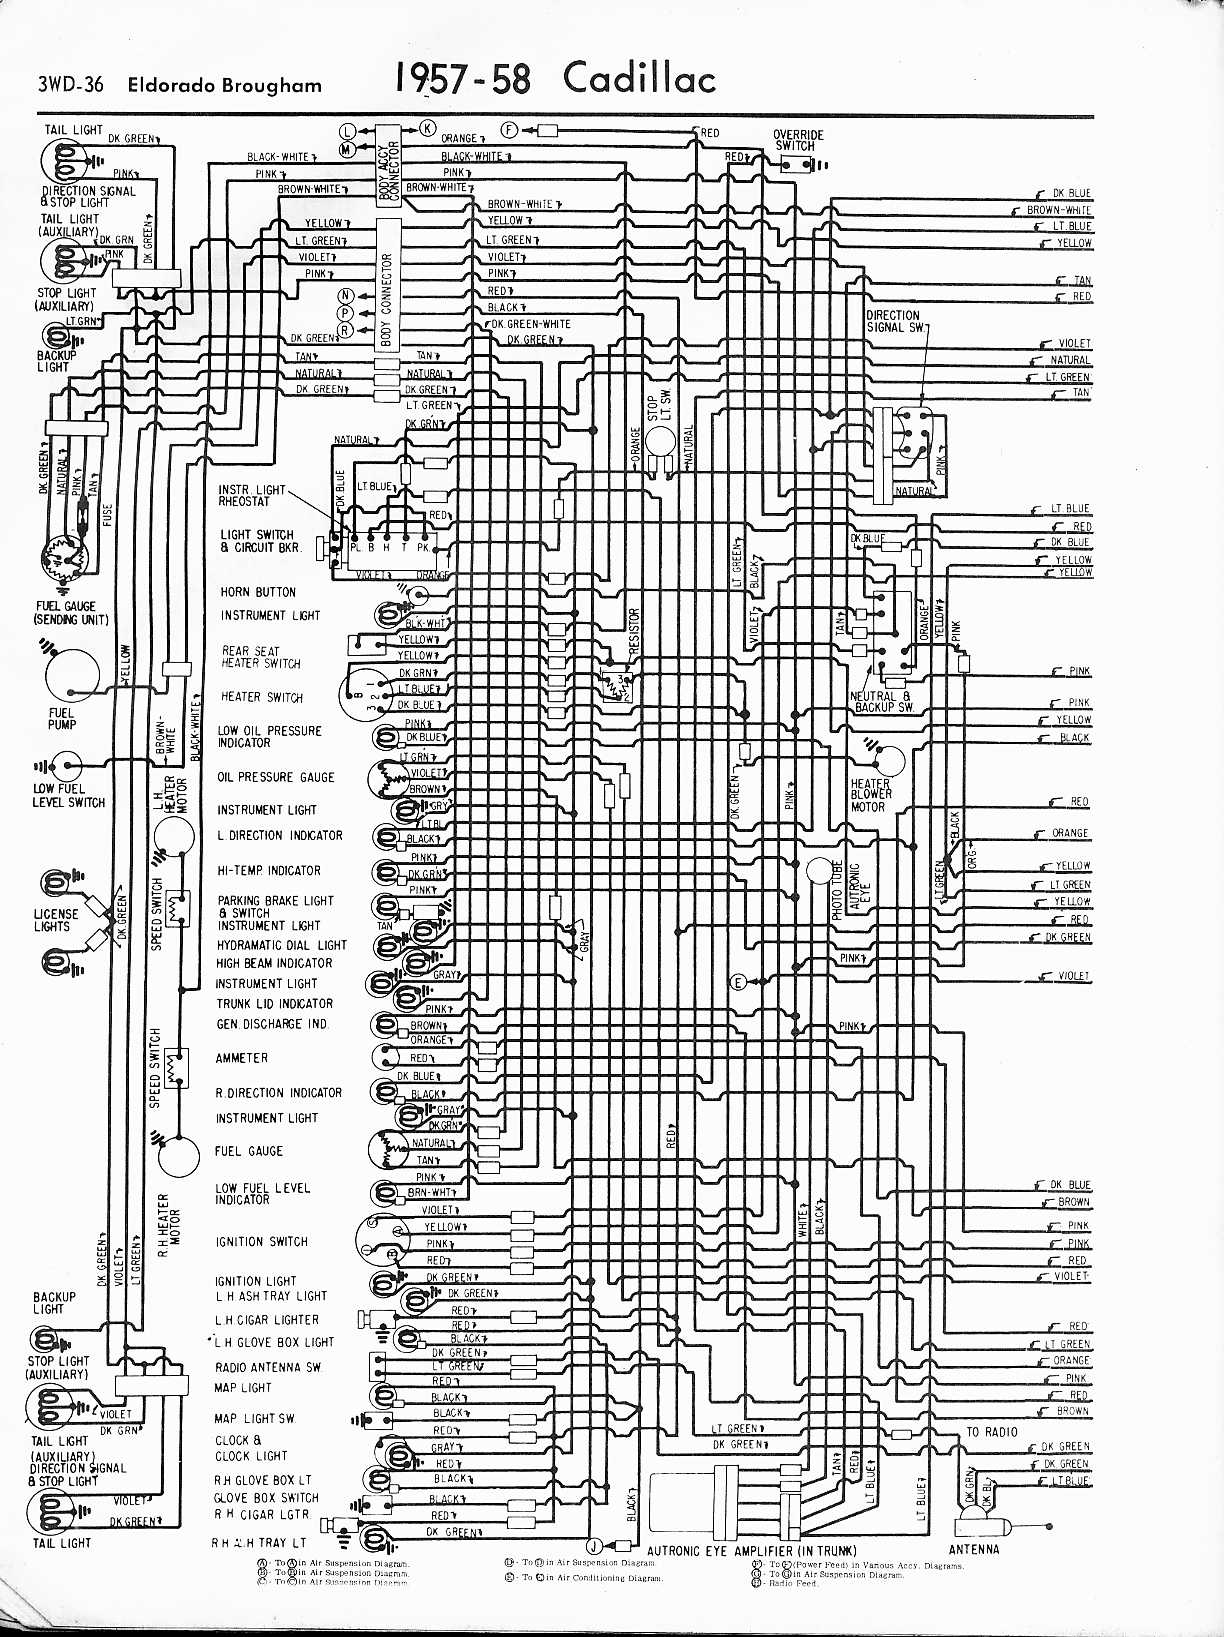 MWireCadi65_3WD 036 cadillac wiring diagrams 1957 1965 2001 cadillac deville wiring diagram at gsmportal.co